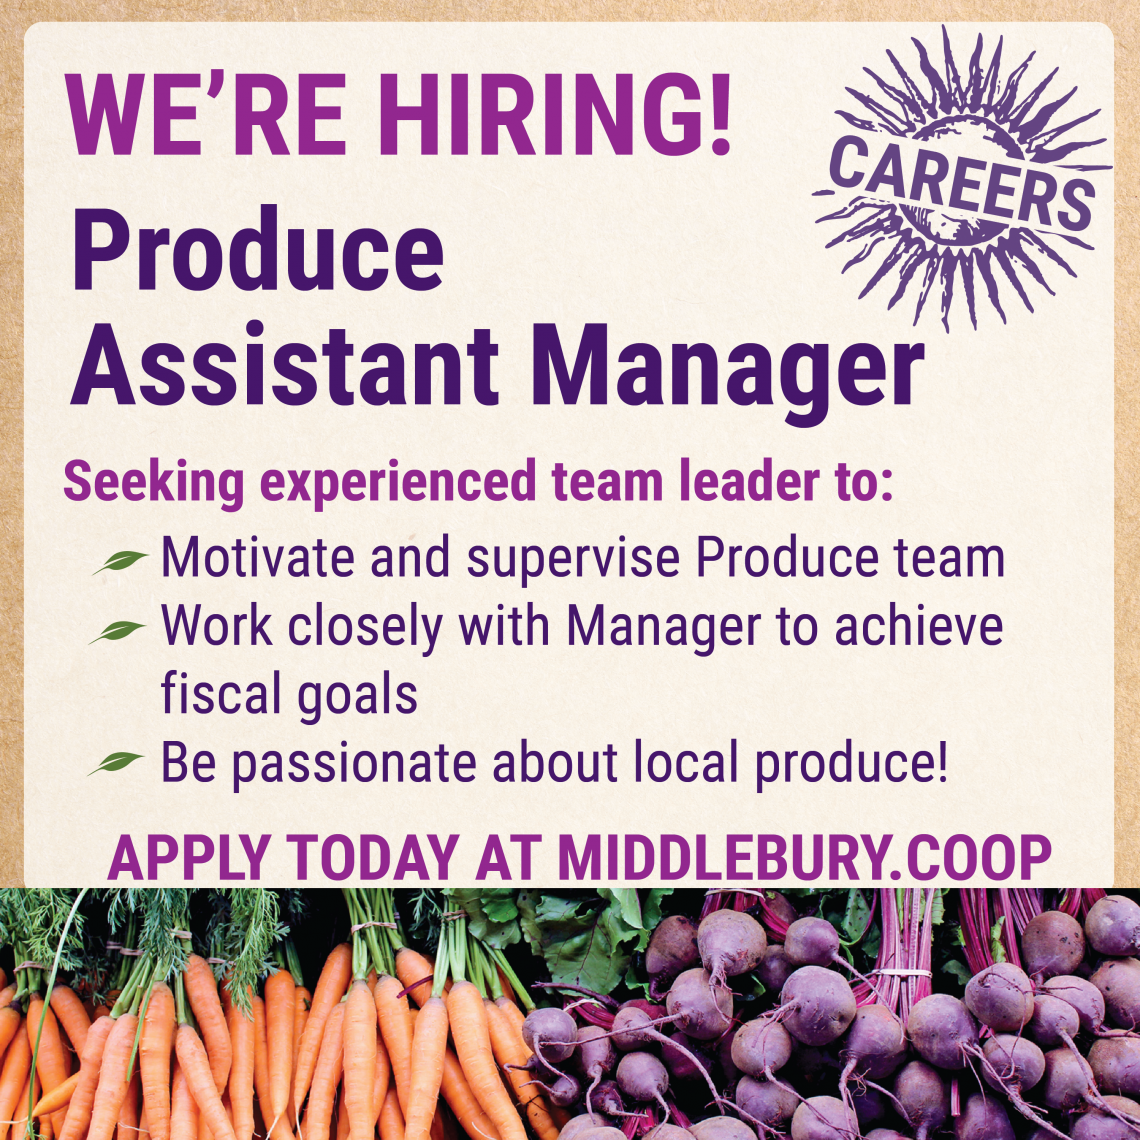 Carrots and beets decorating a job listing for produce assistant manager